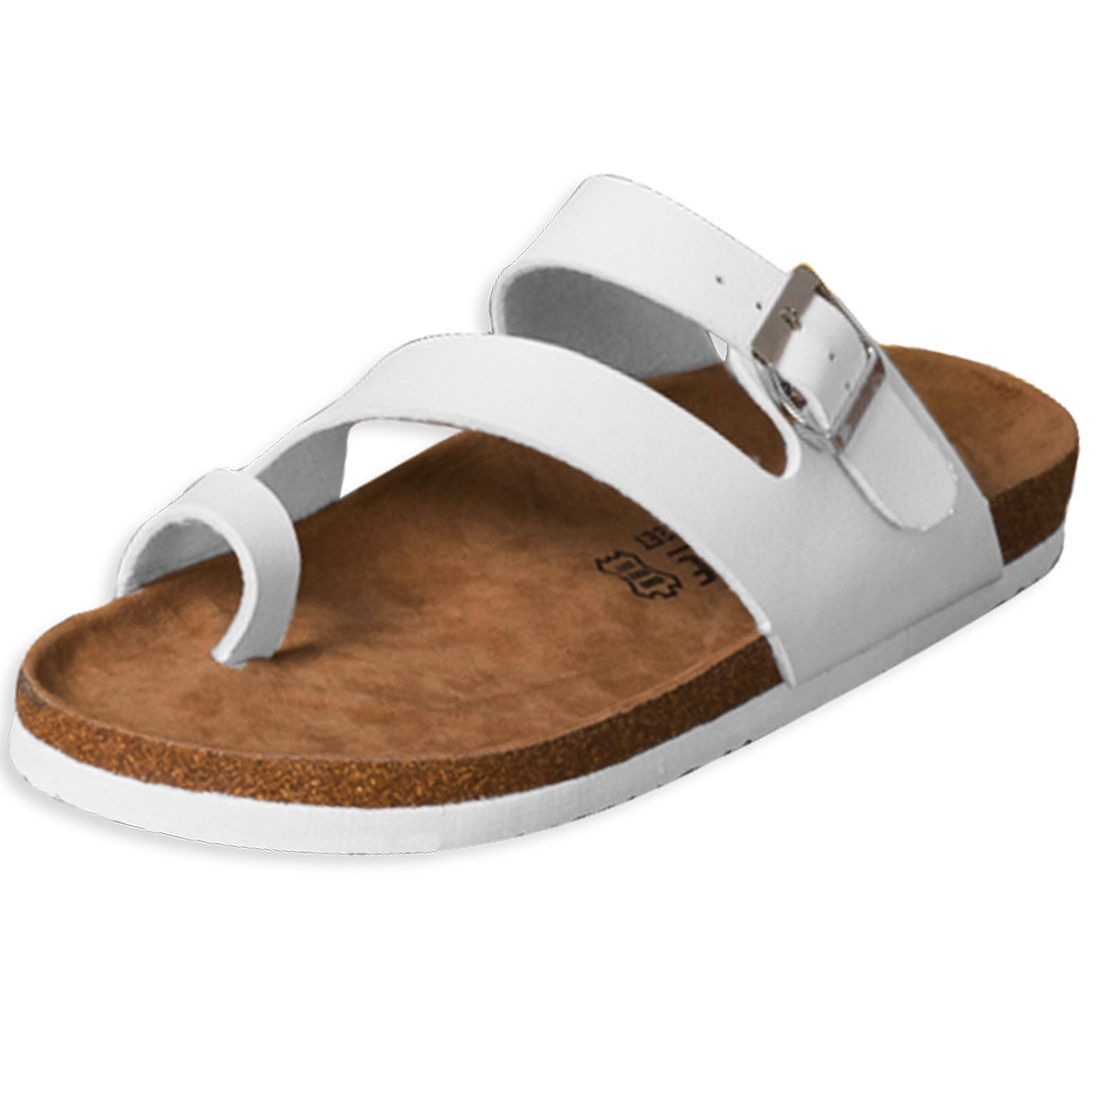 Unisex Faux Leather Upper Fashionable White Sandals US 9